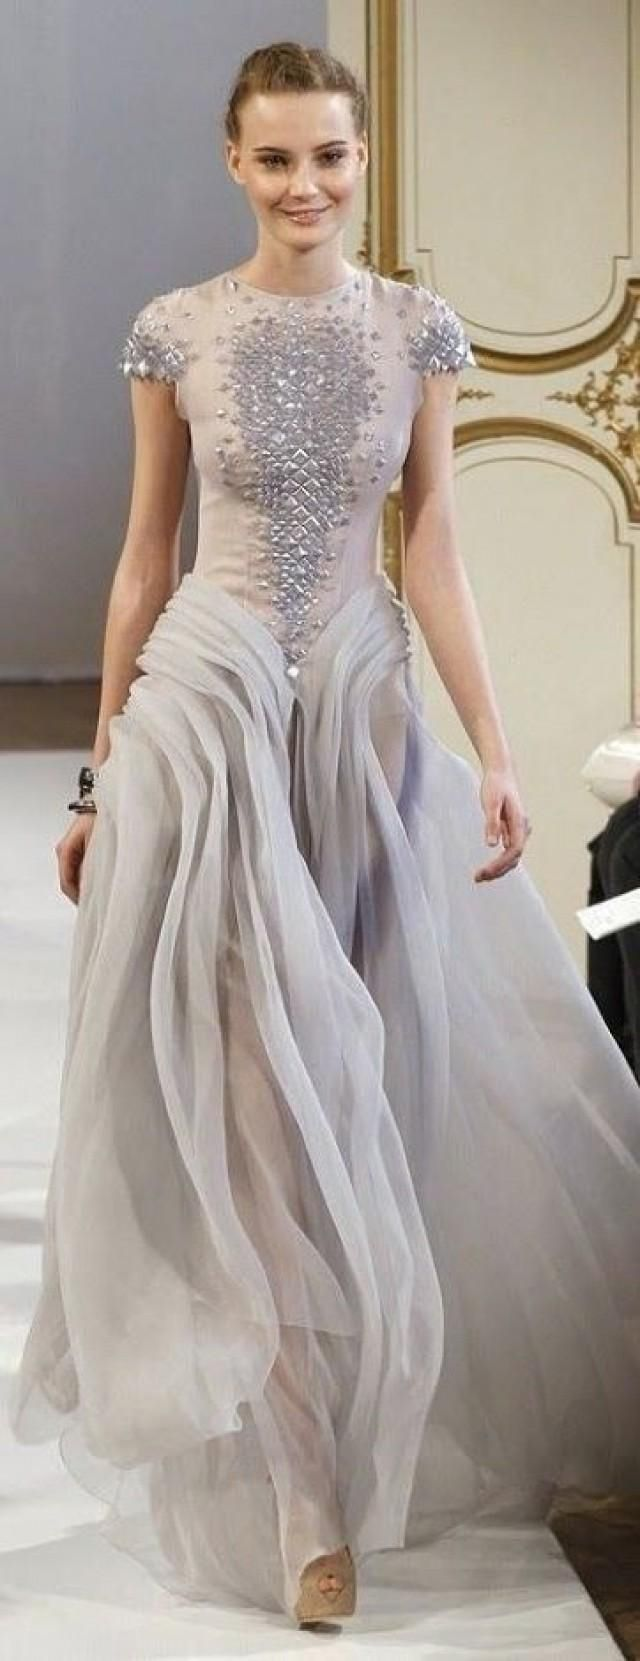 pale blue gown with detailed cap sleeve bodice!